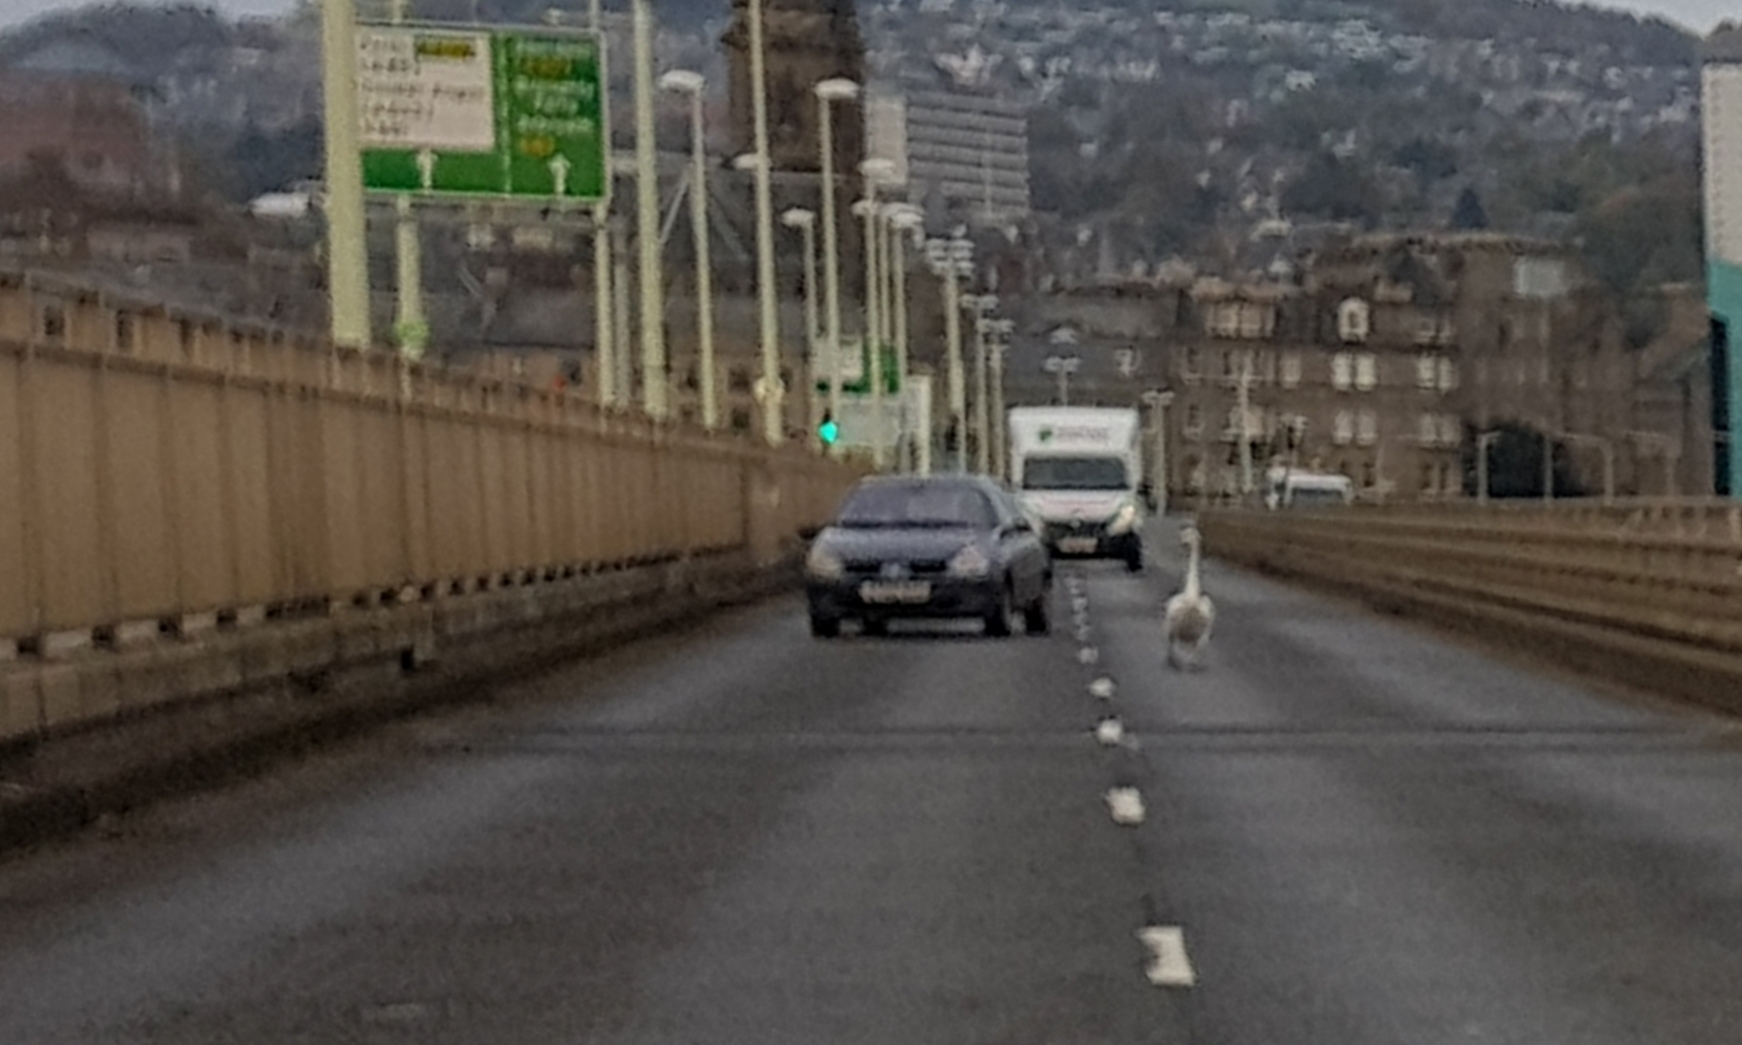 A driver has to take evasive action to avoid hitting the swan.